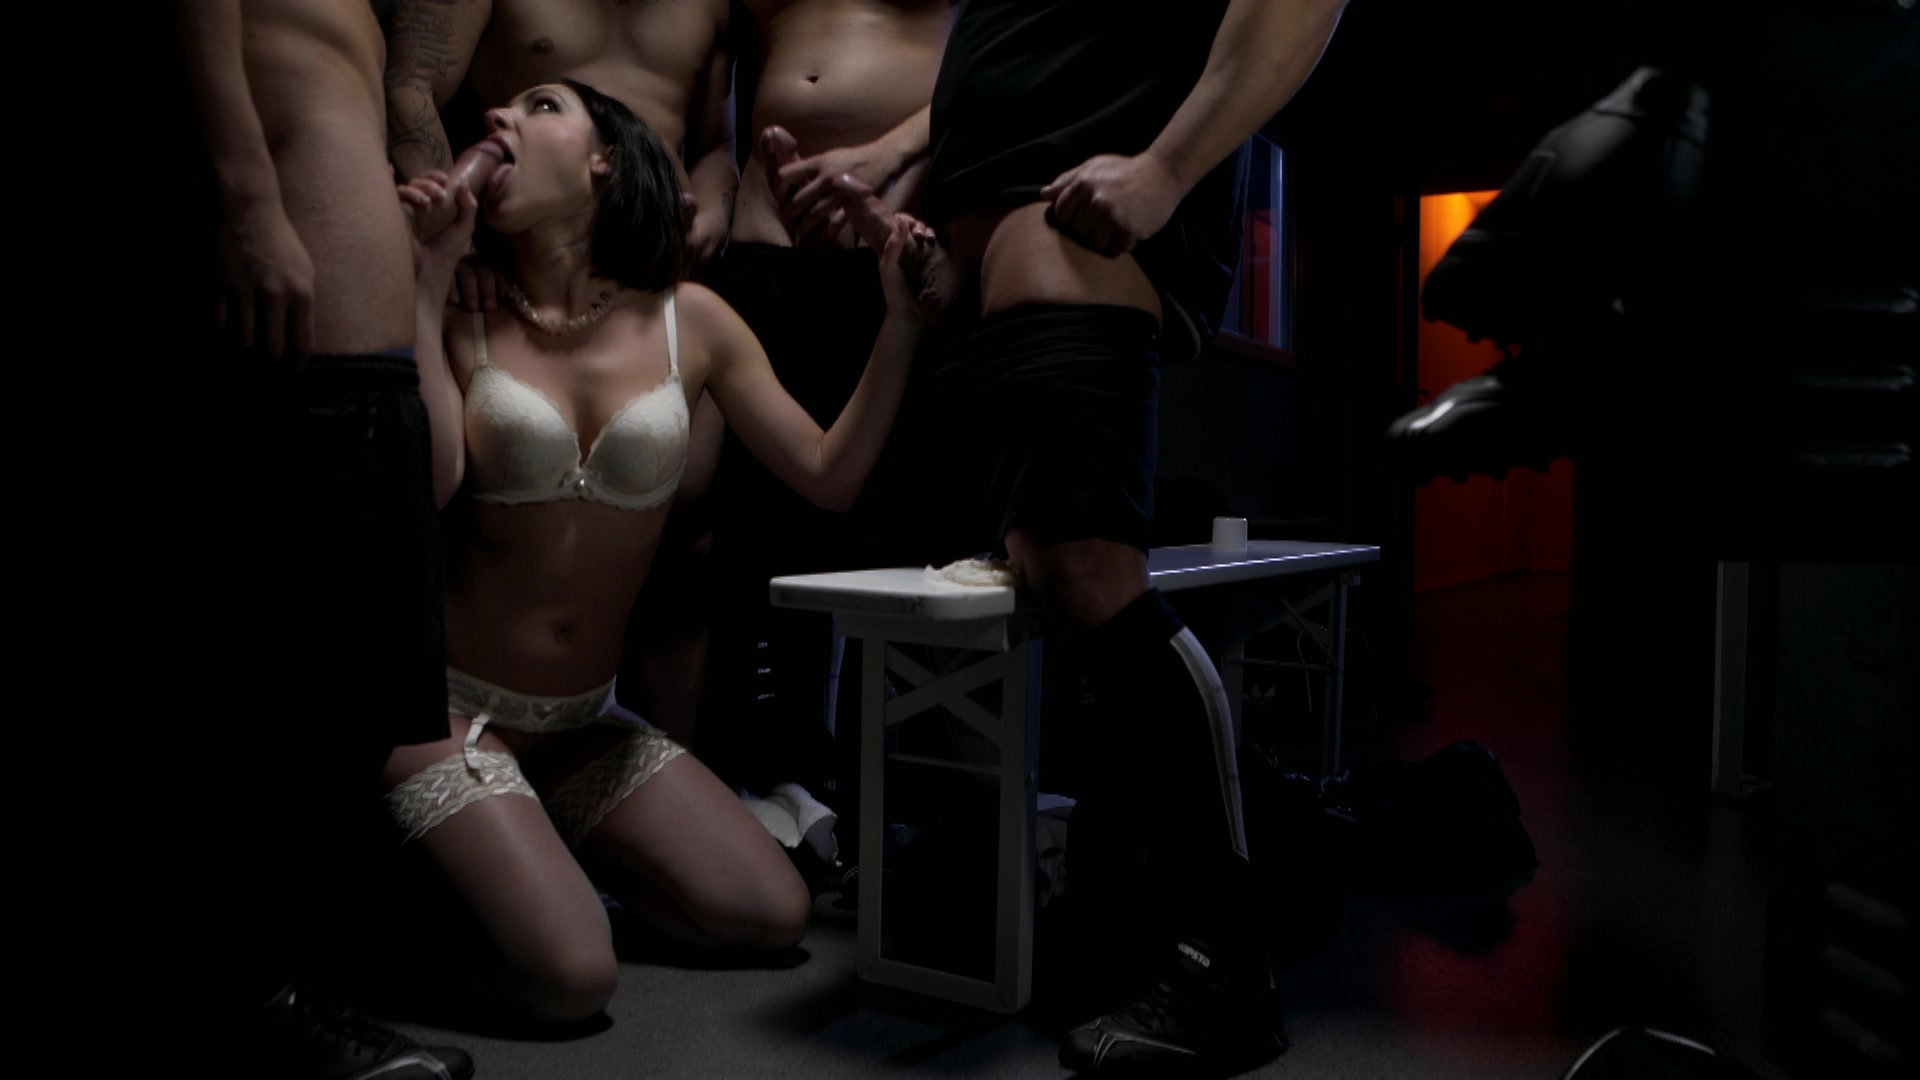 Asian massage parlor release full nyc